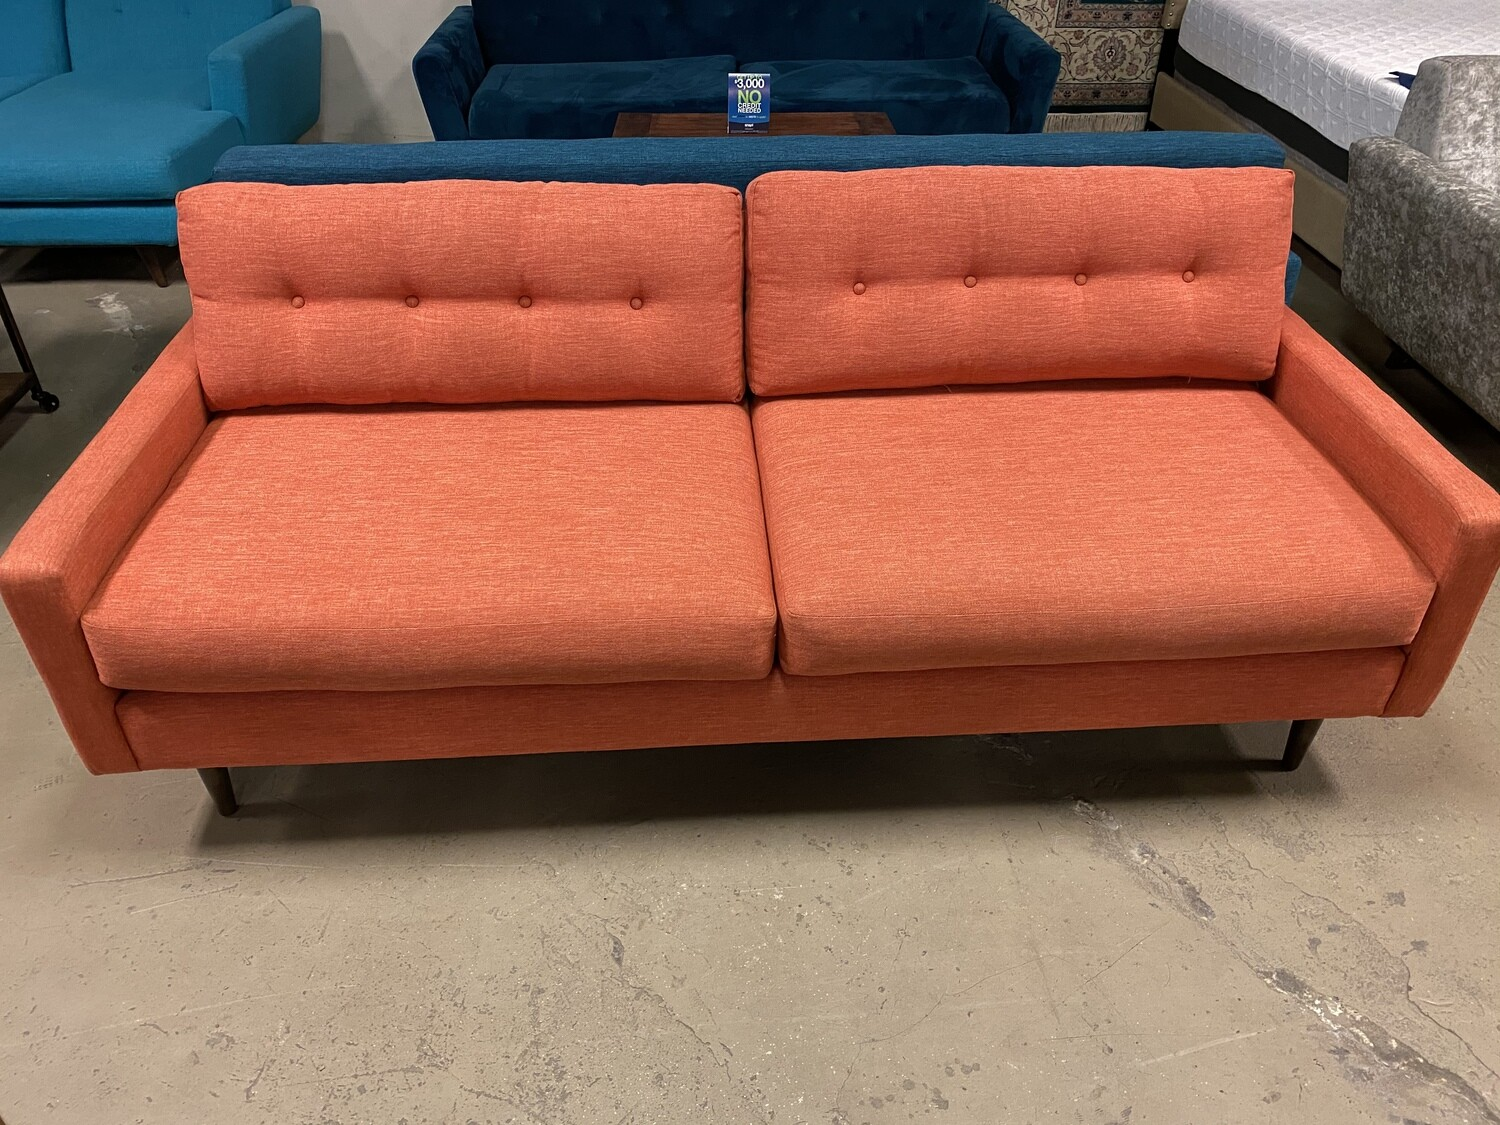 JB Hopson Sofa (Key Largo Coral) 2173